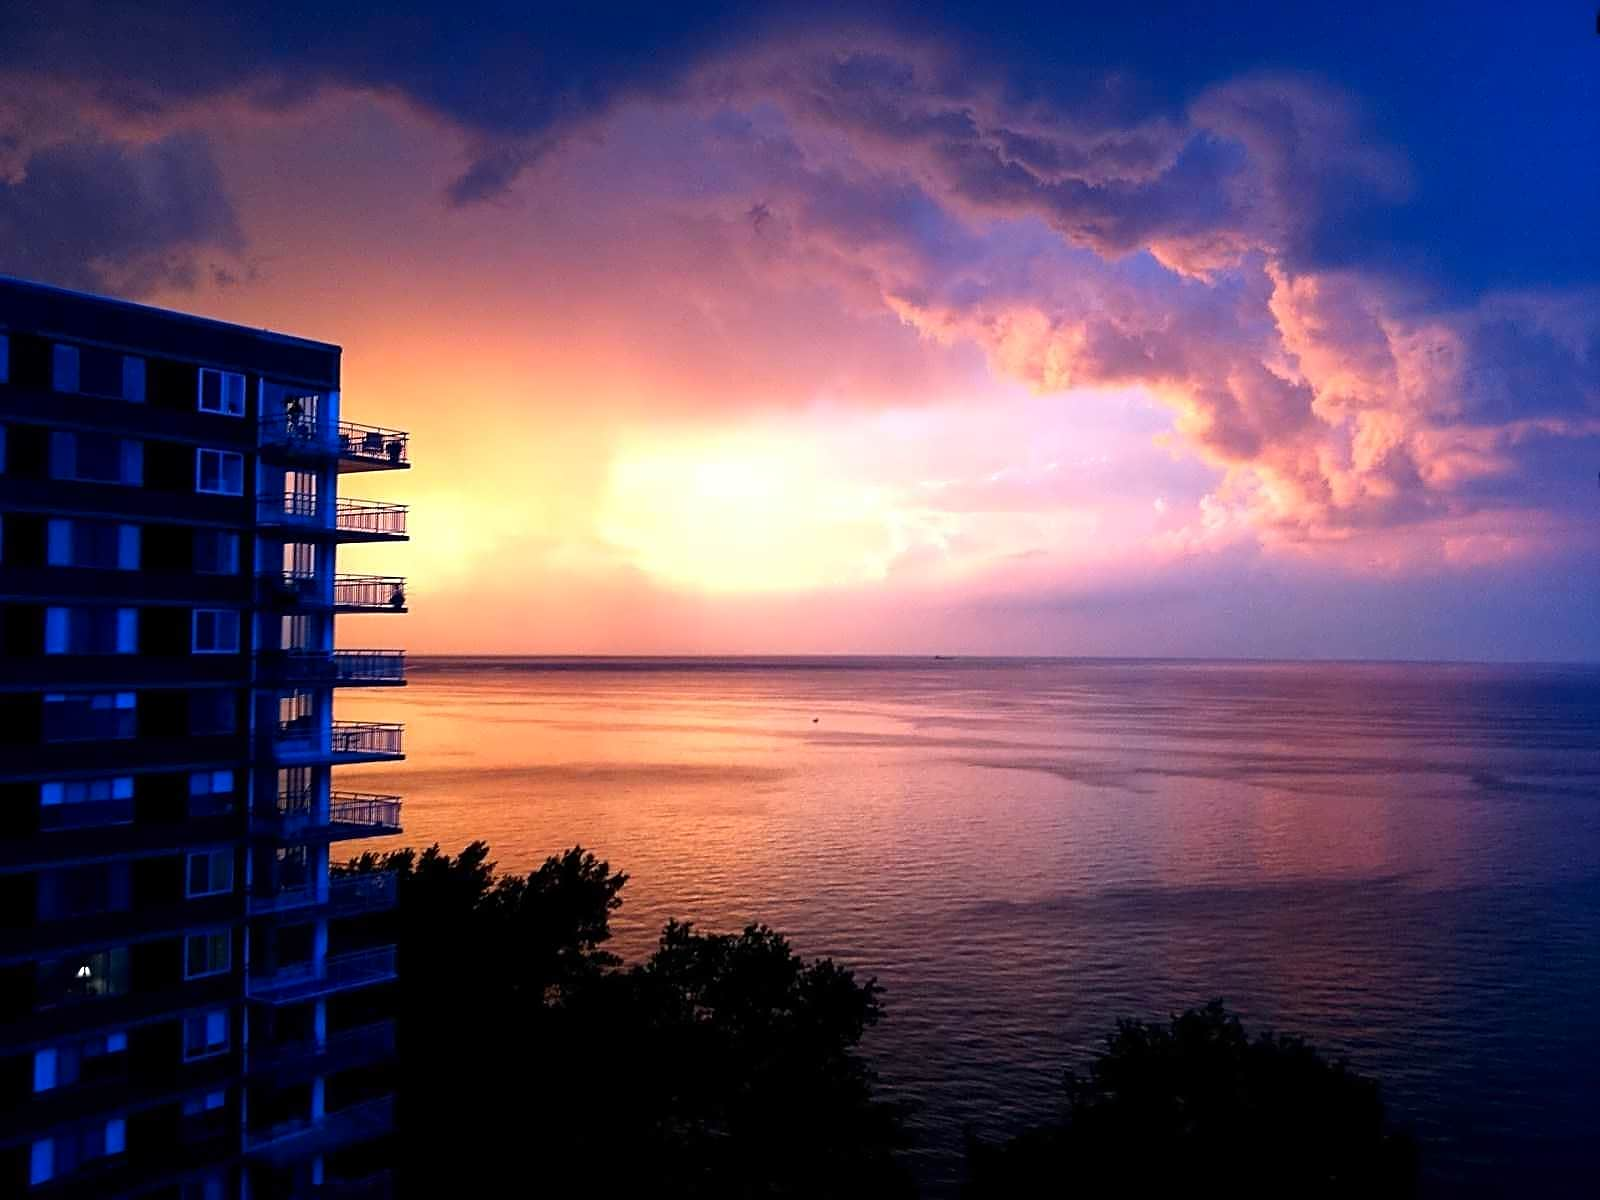 great sunset views from your balcony